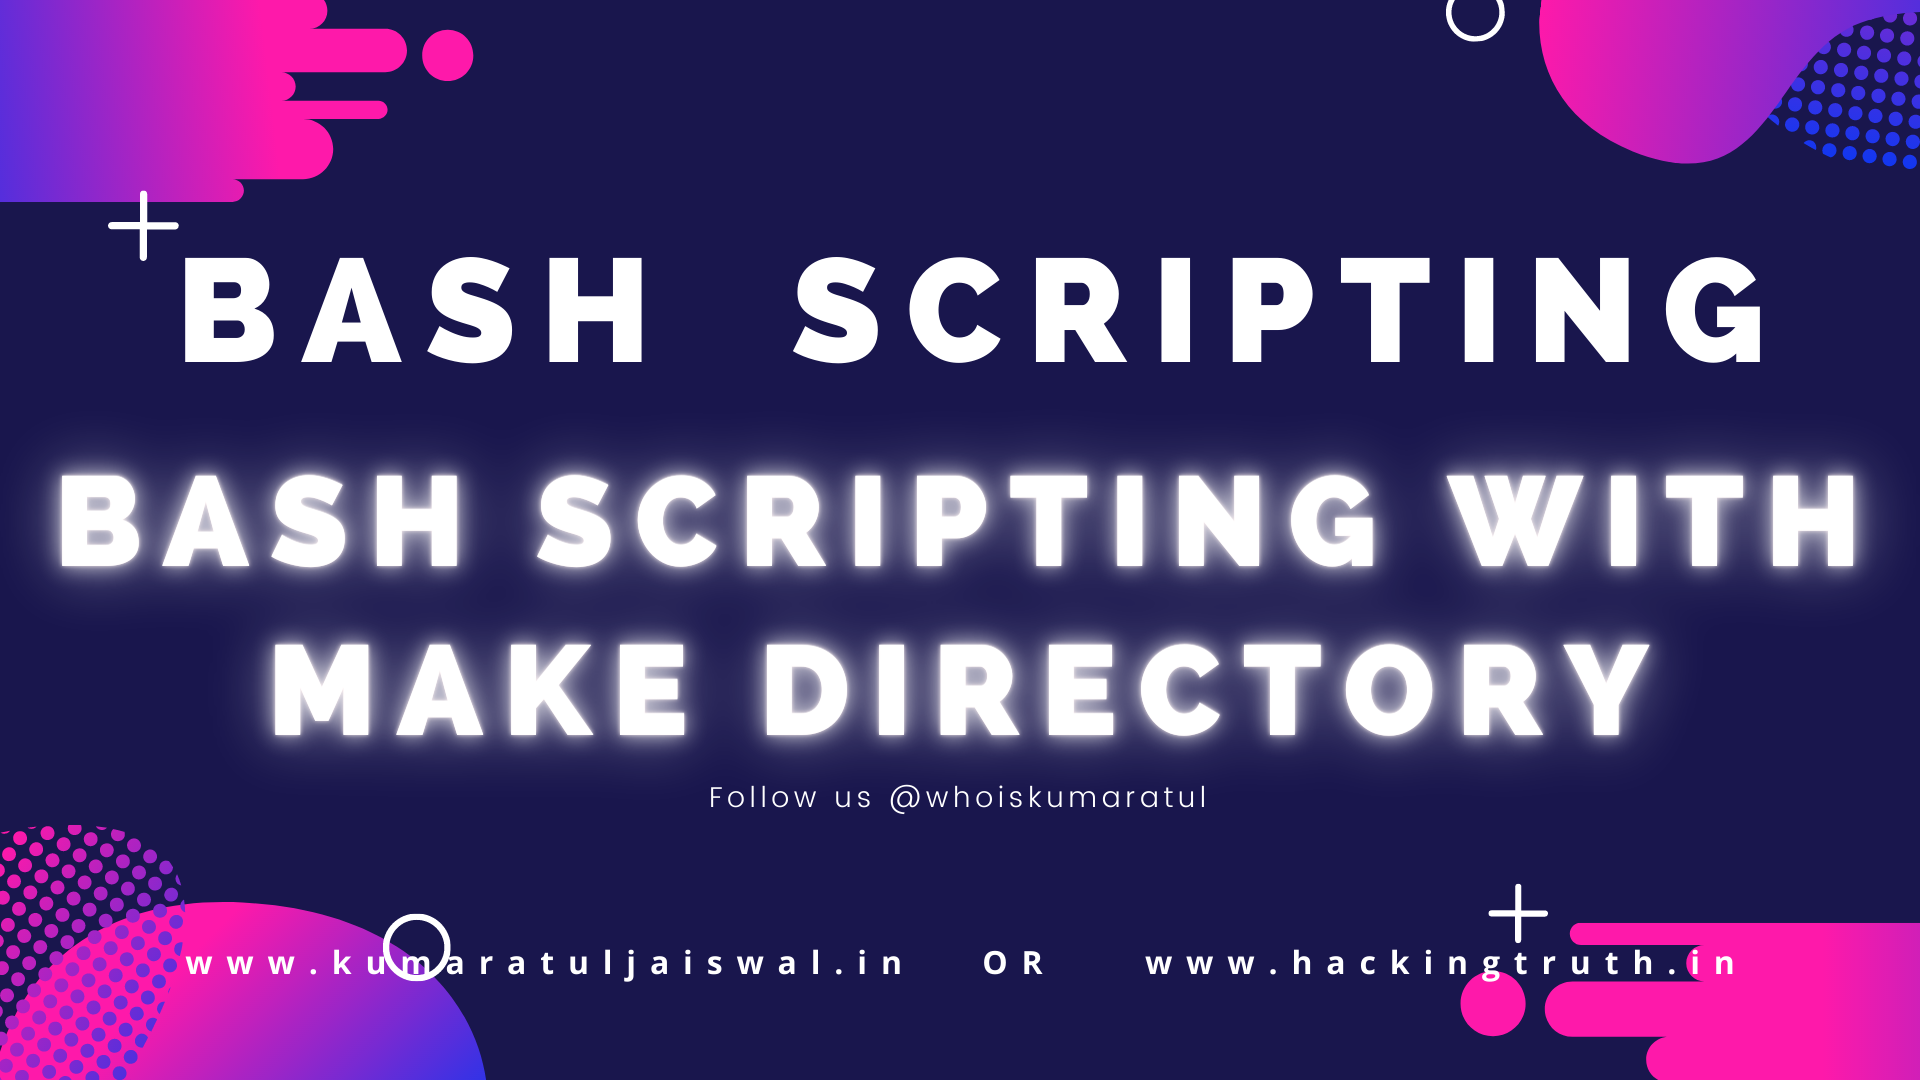 Bash Scripting with make directory